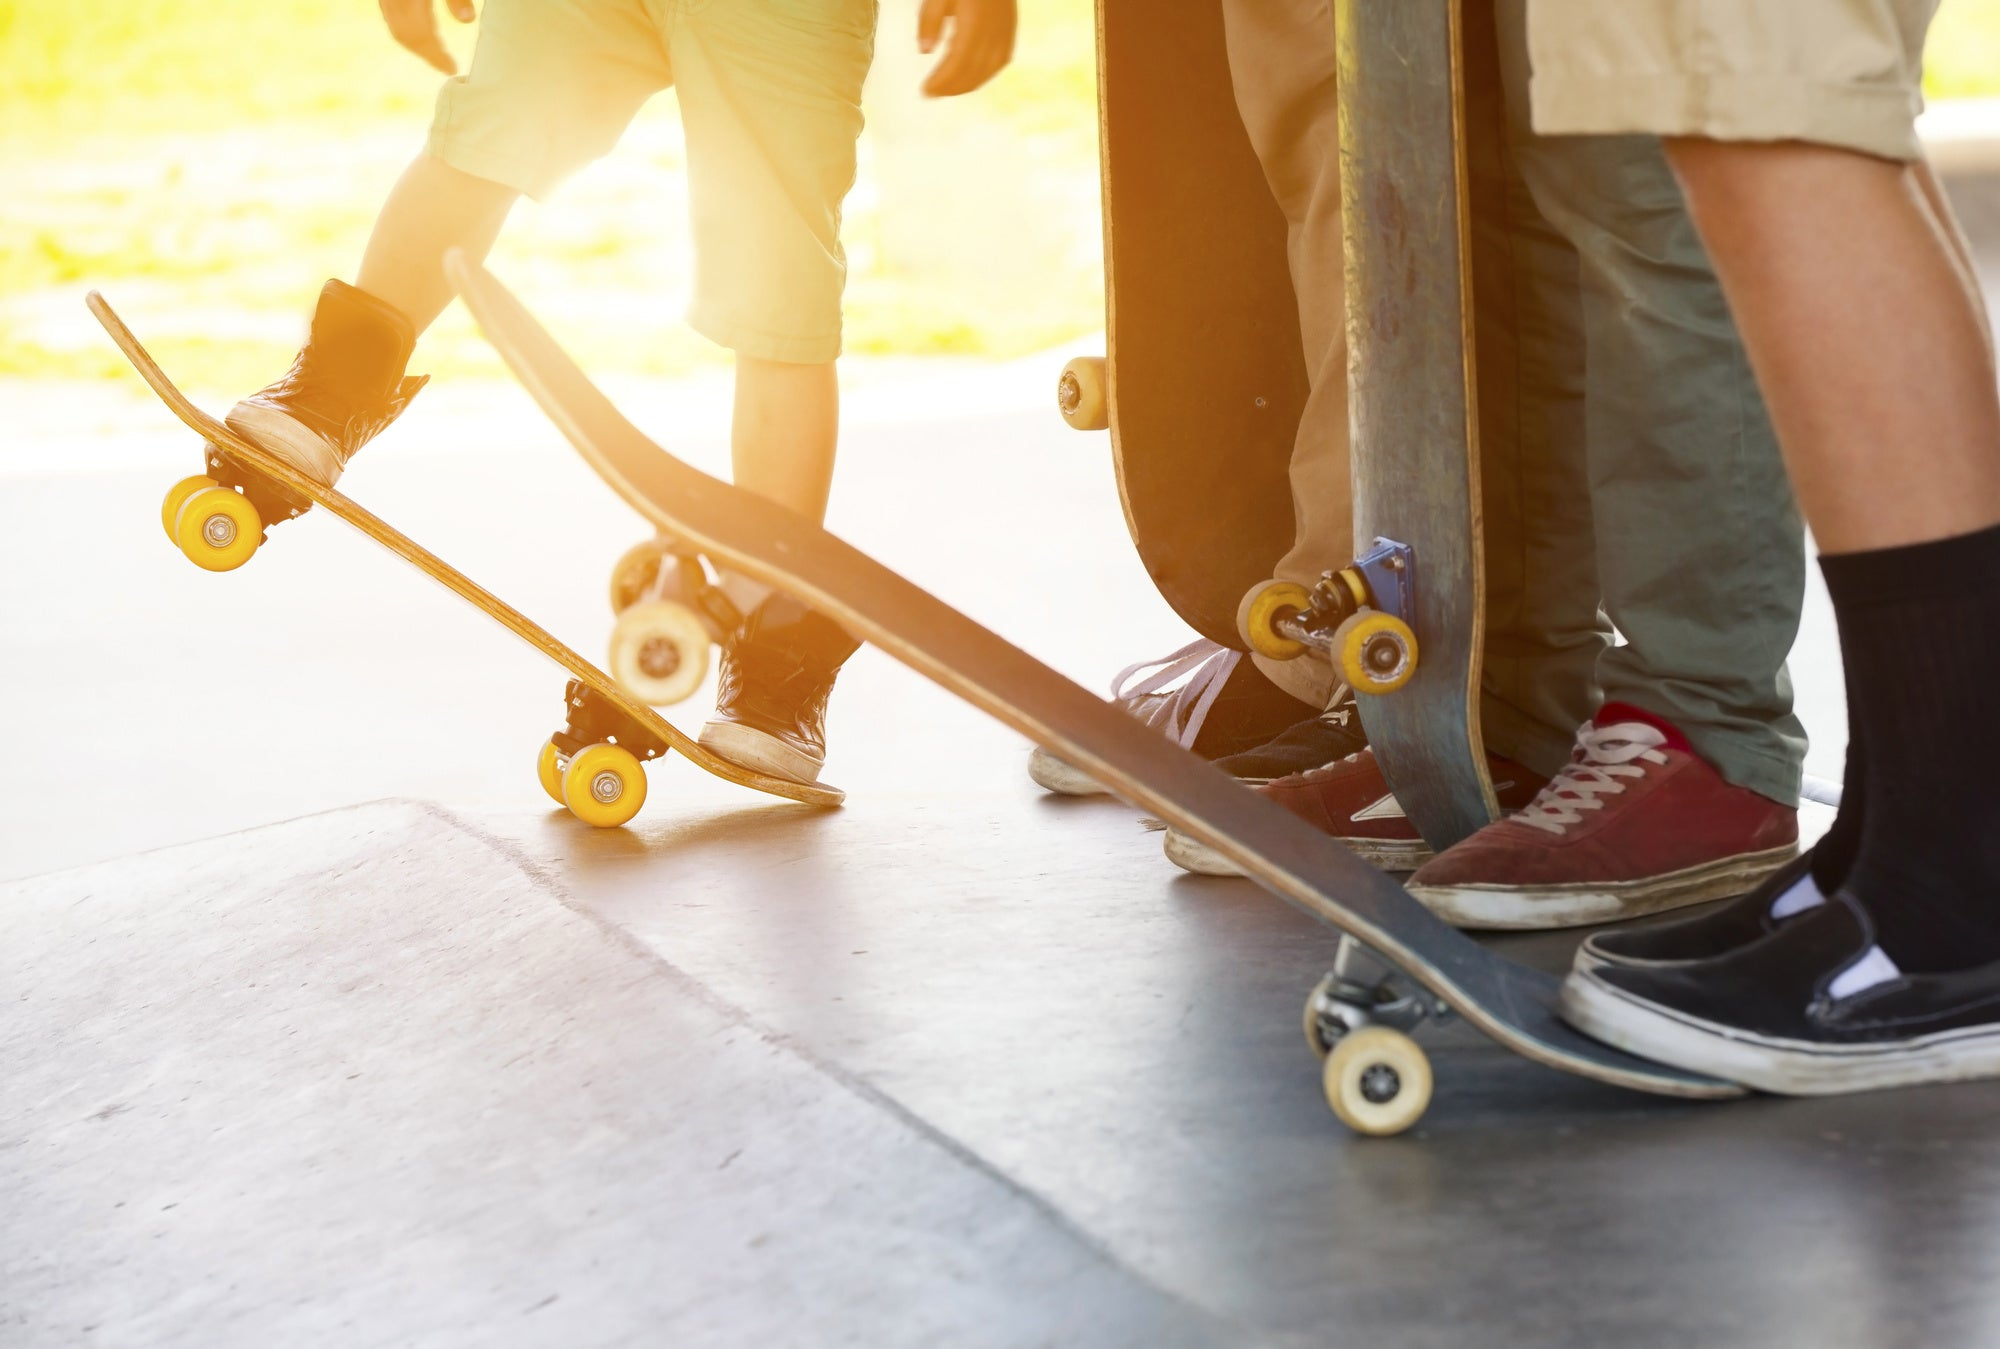 Skateboarding Culture: It's History and It's Impact